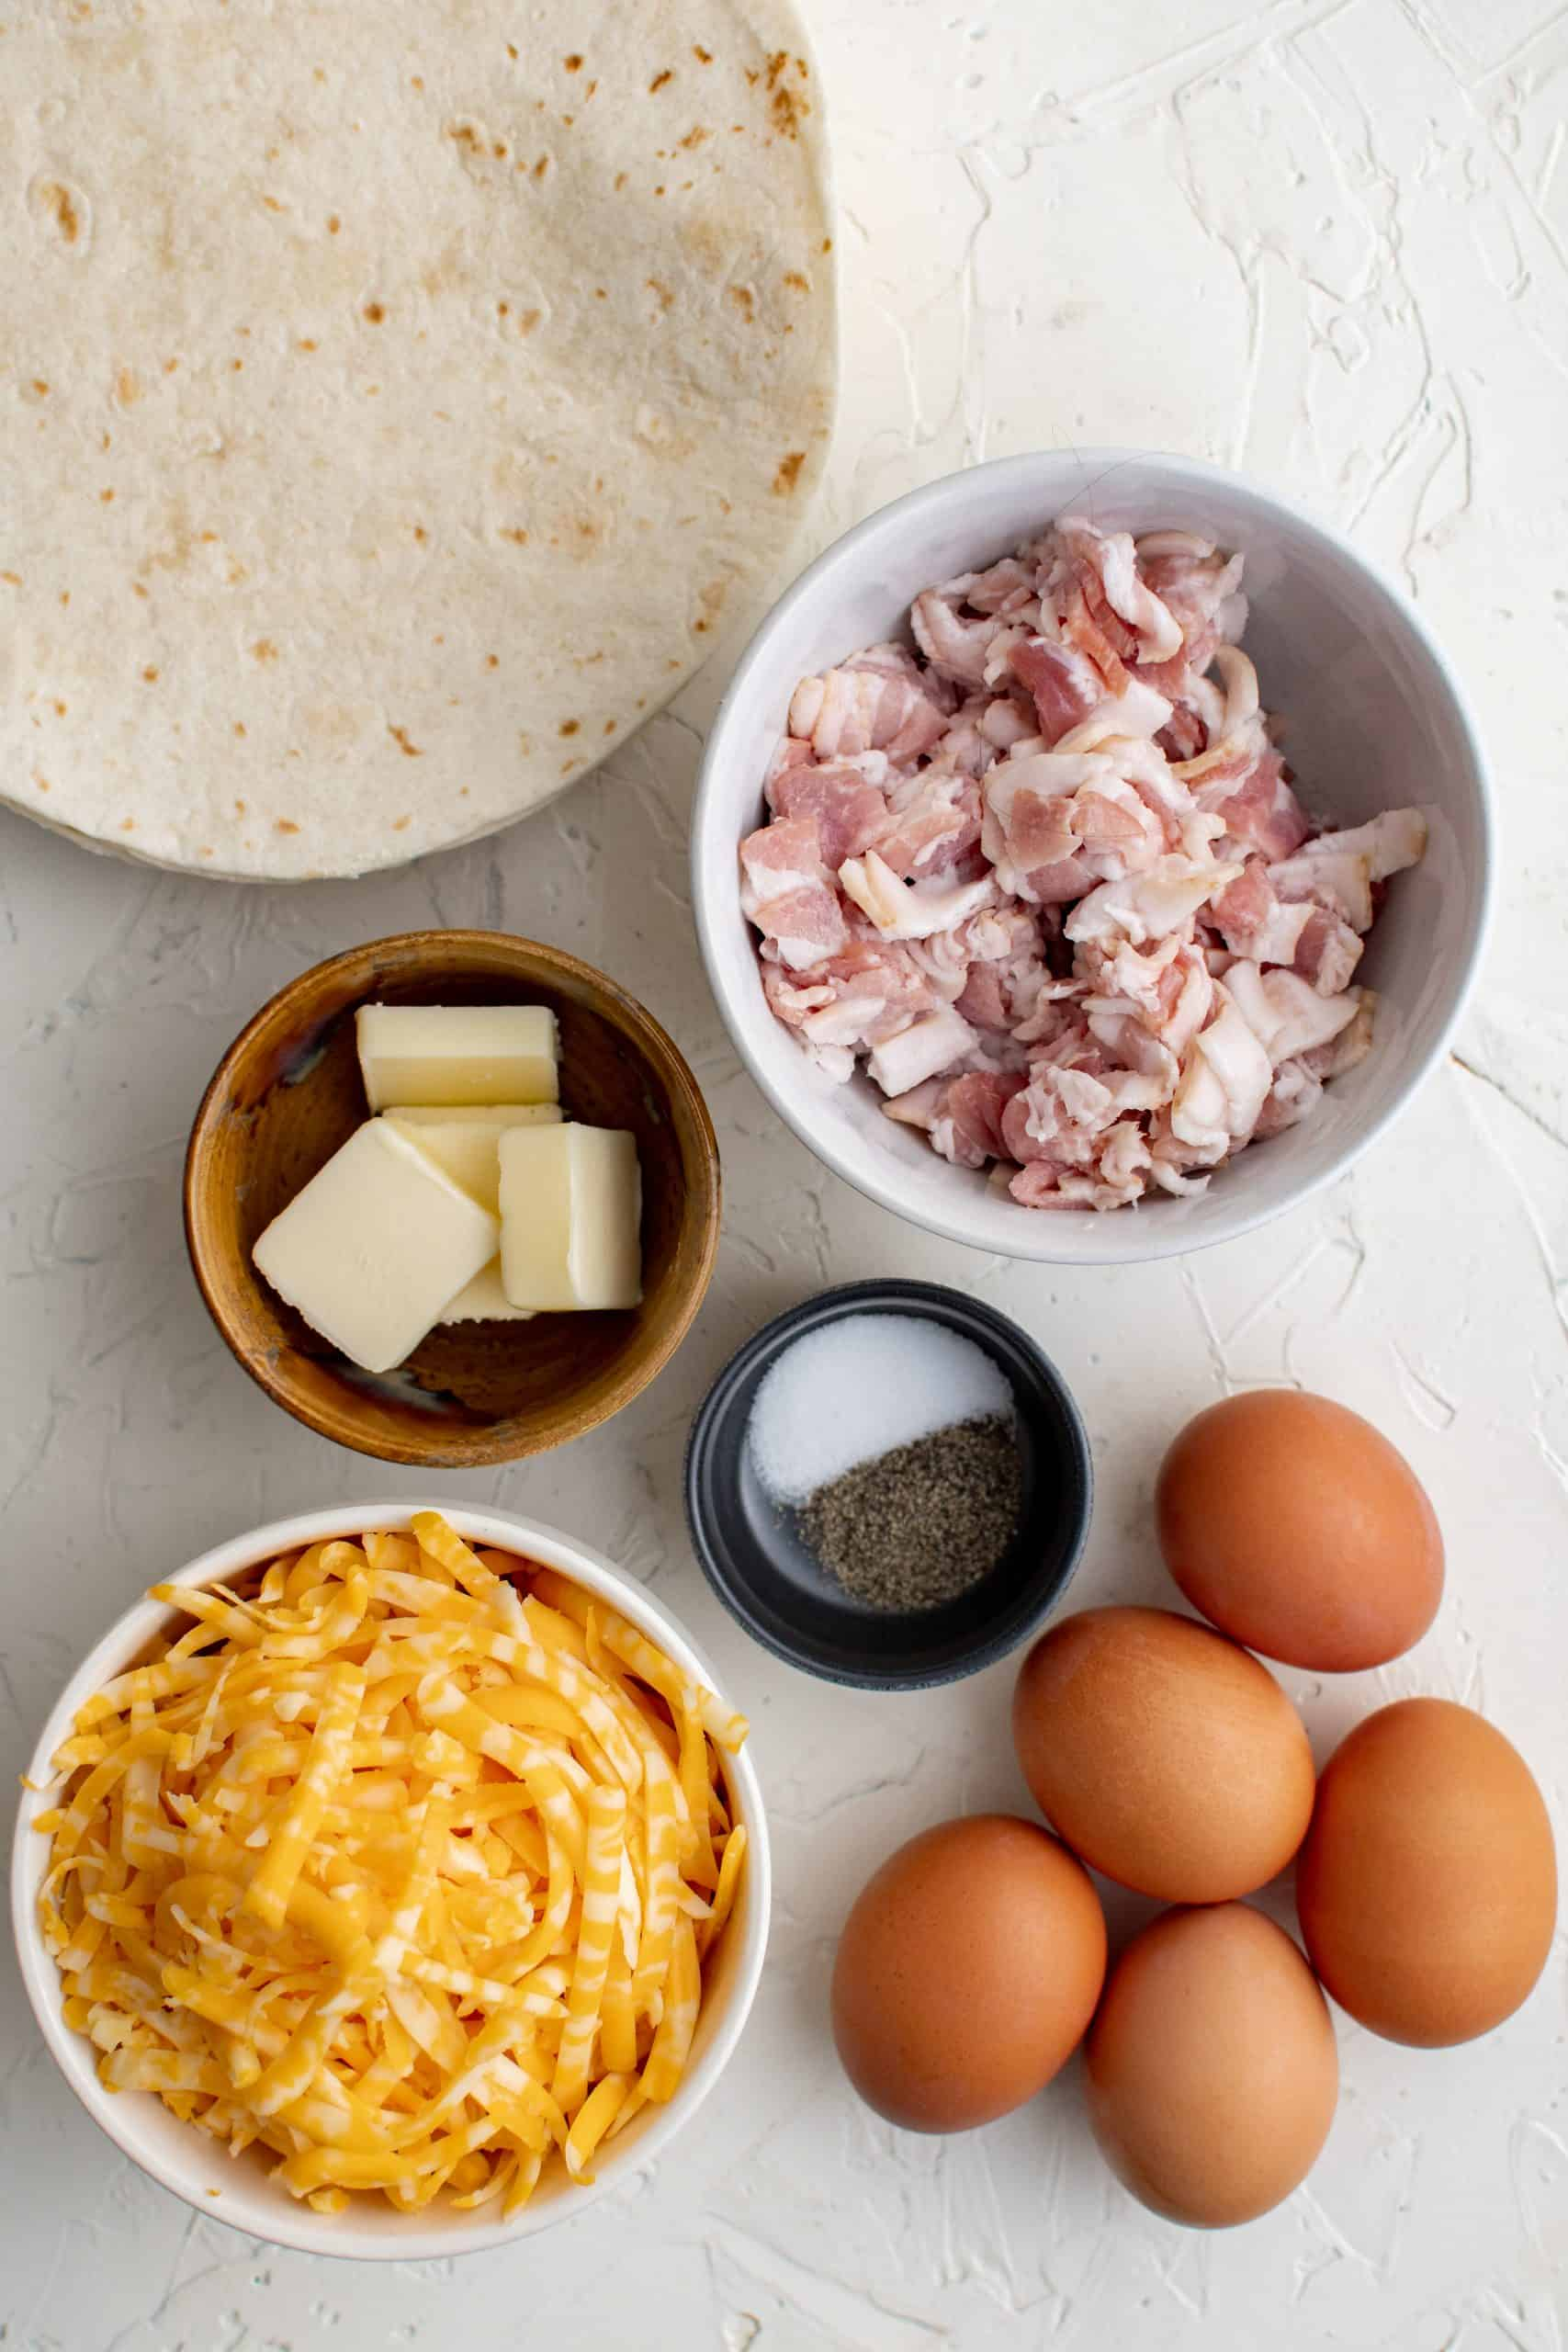 Ingredients needed to make Breakfast Quesadillas: bacon, eggs, butter, tortillas and cheese.